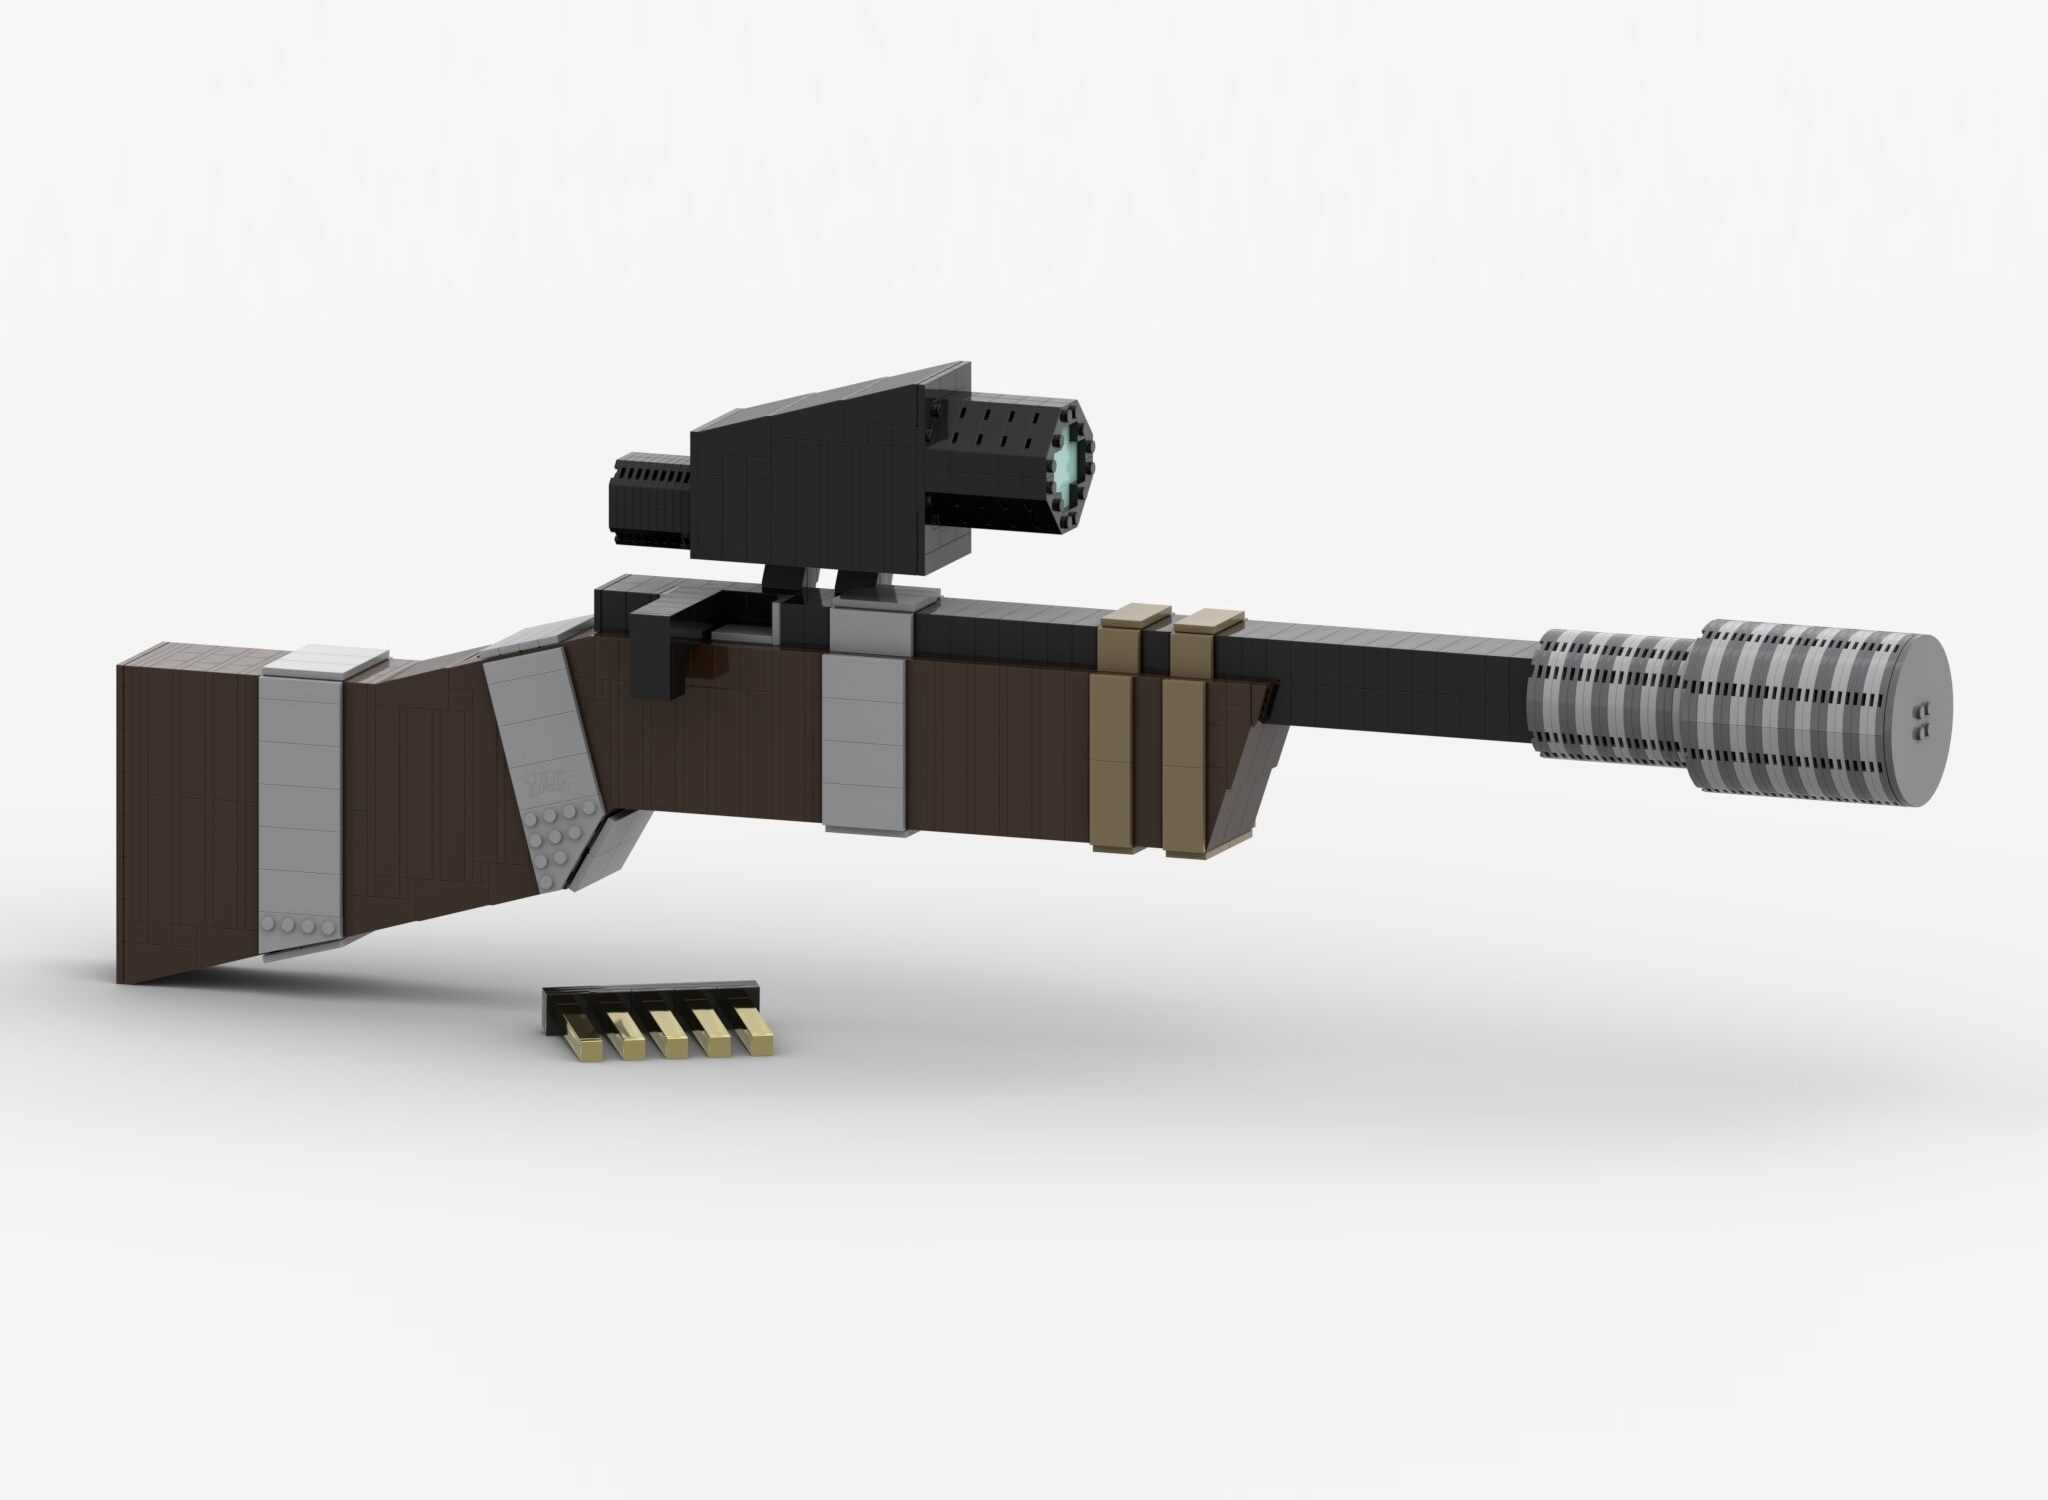 Makeshift Pine Rifle with a makeshift attachments and a rifle clip, made out of Lego bricks.